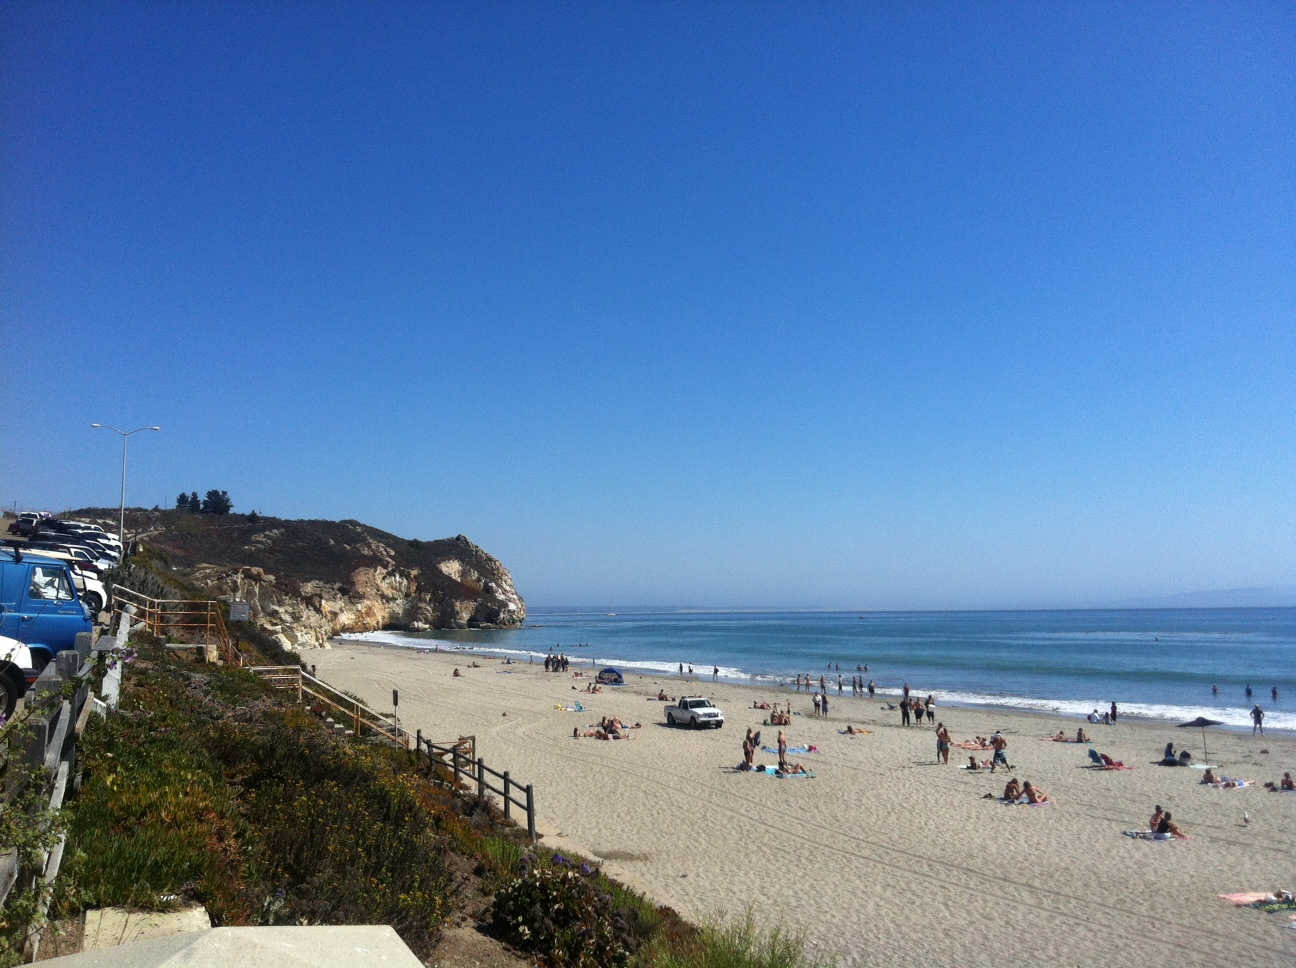 Avila has one of the most beautiful beaches in California....